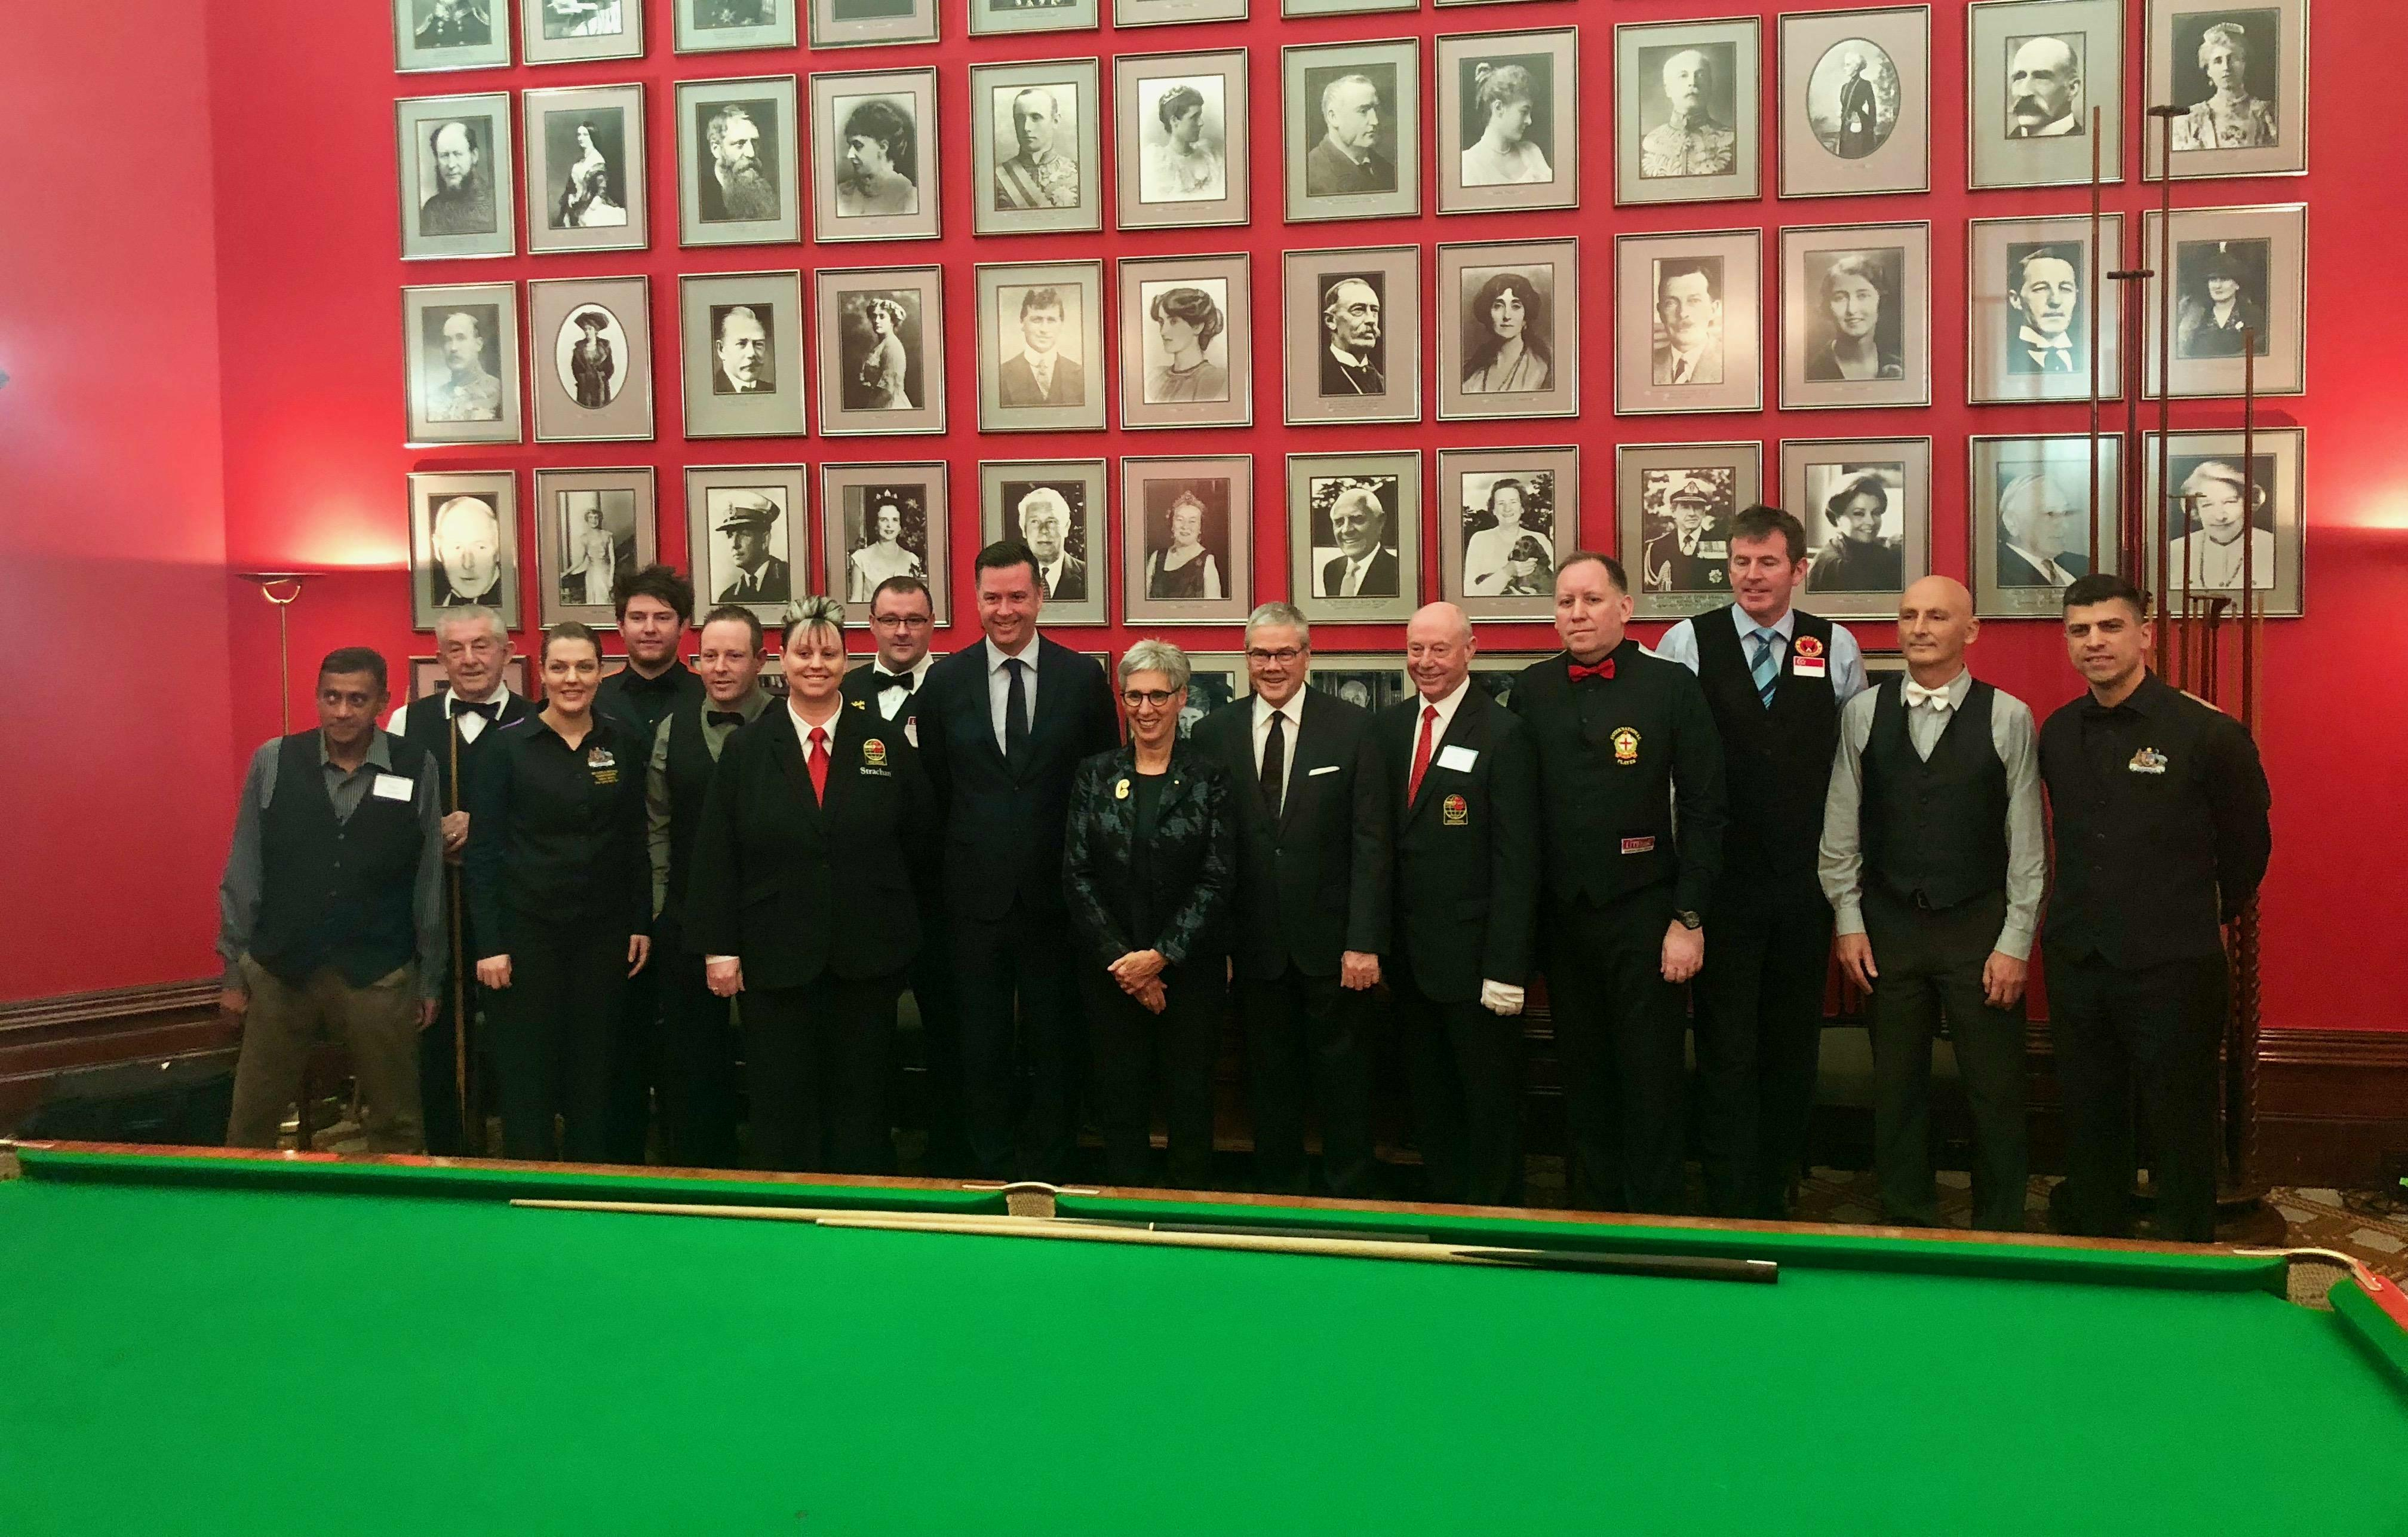 Billiards and snooker champions in the Ballroom with the Governor and Mr Howard.